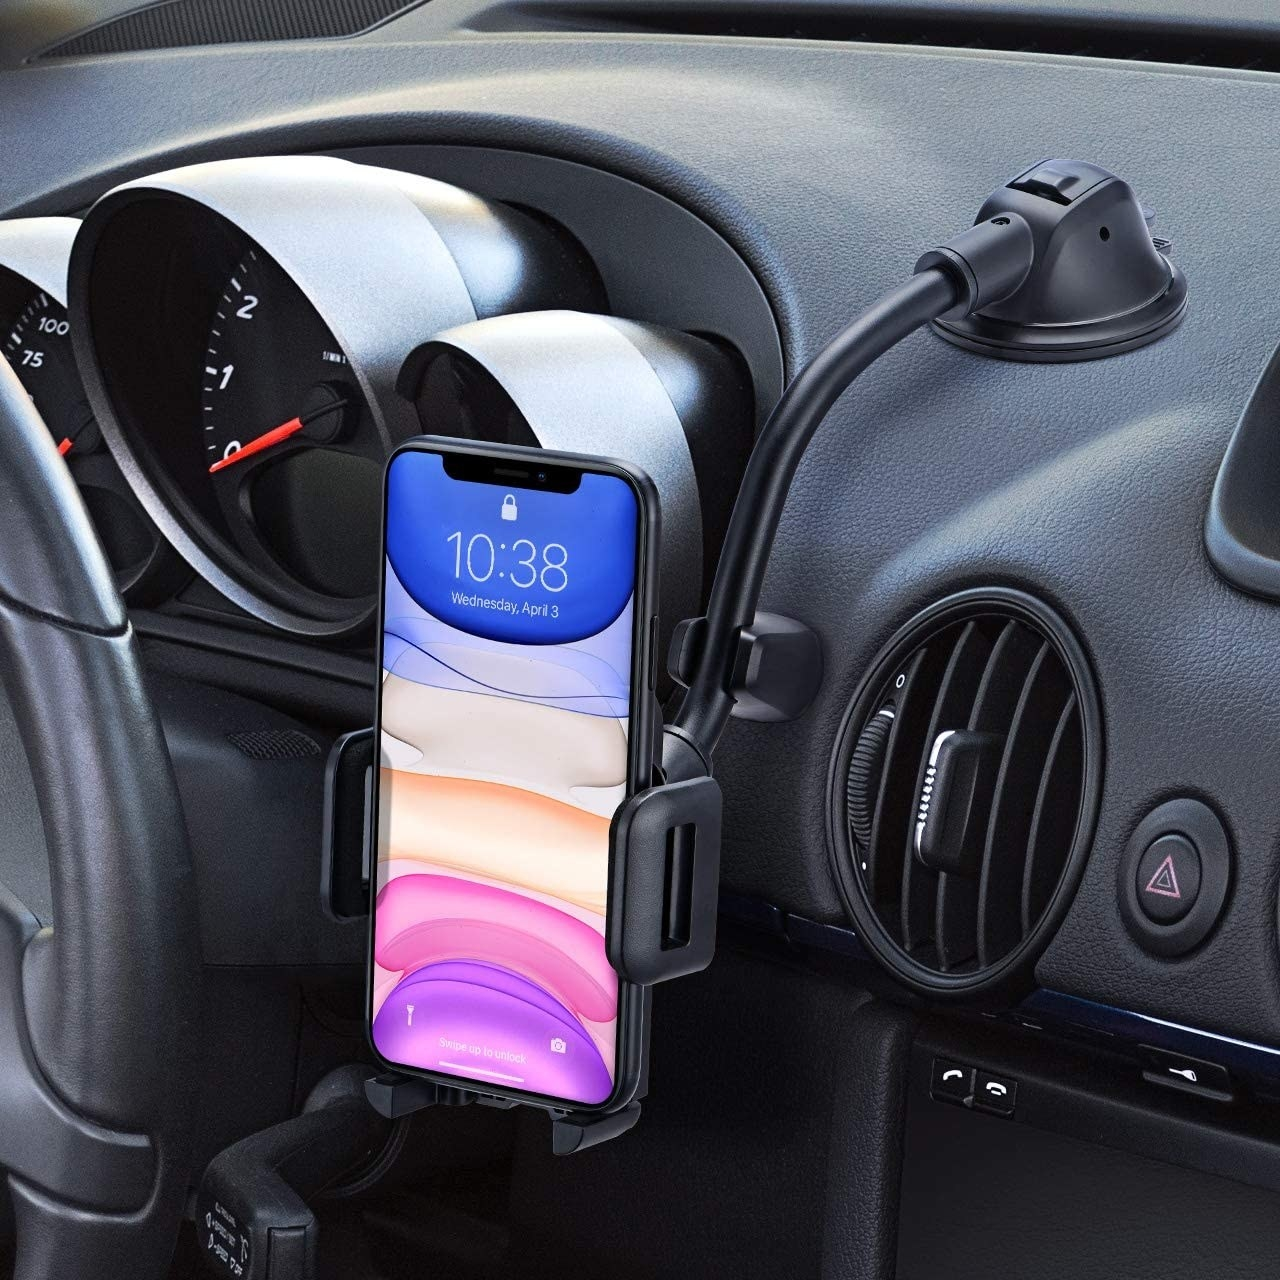 A phone mount suctioned onto a car dashboard